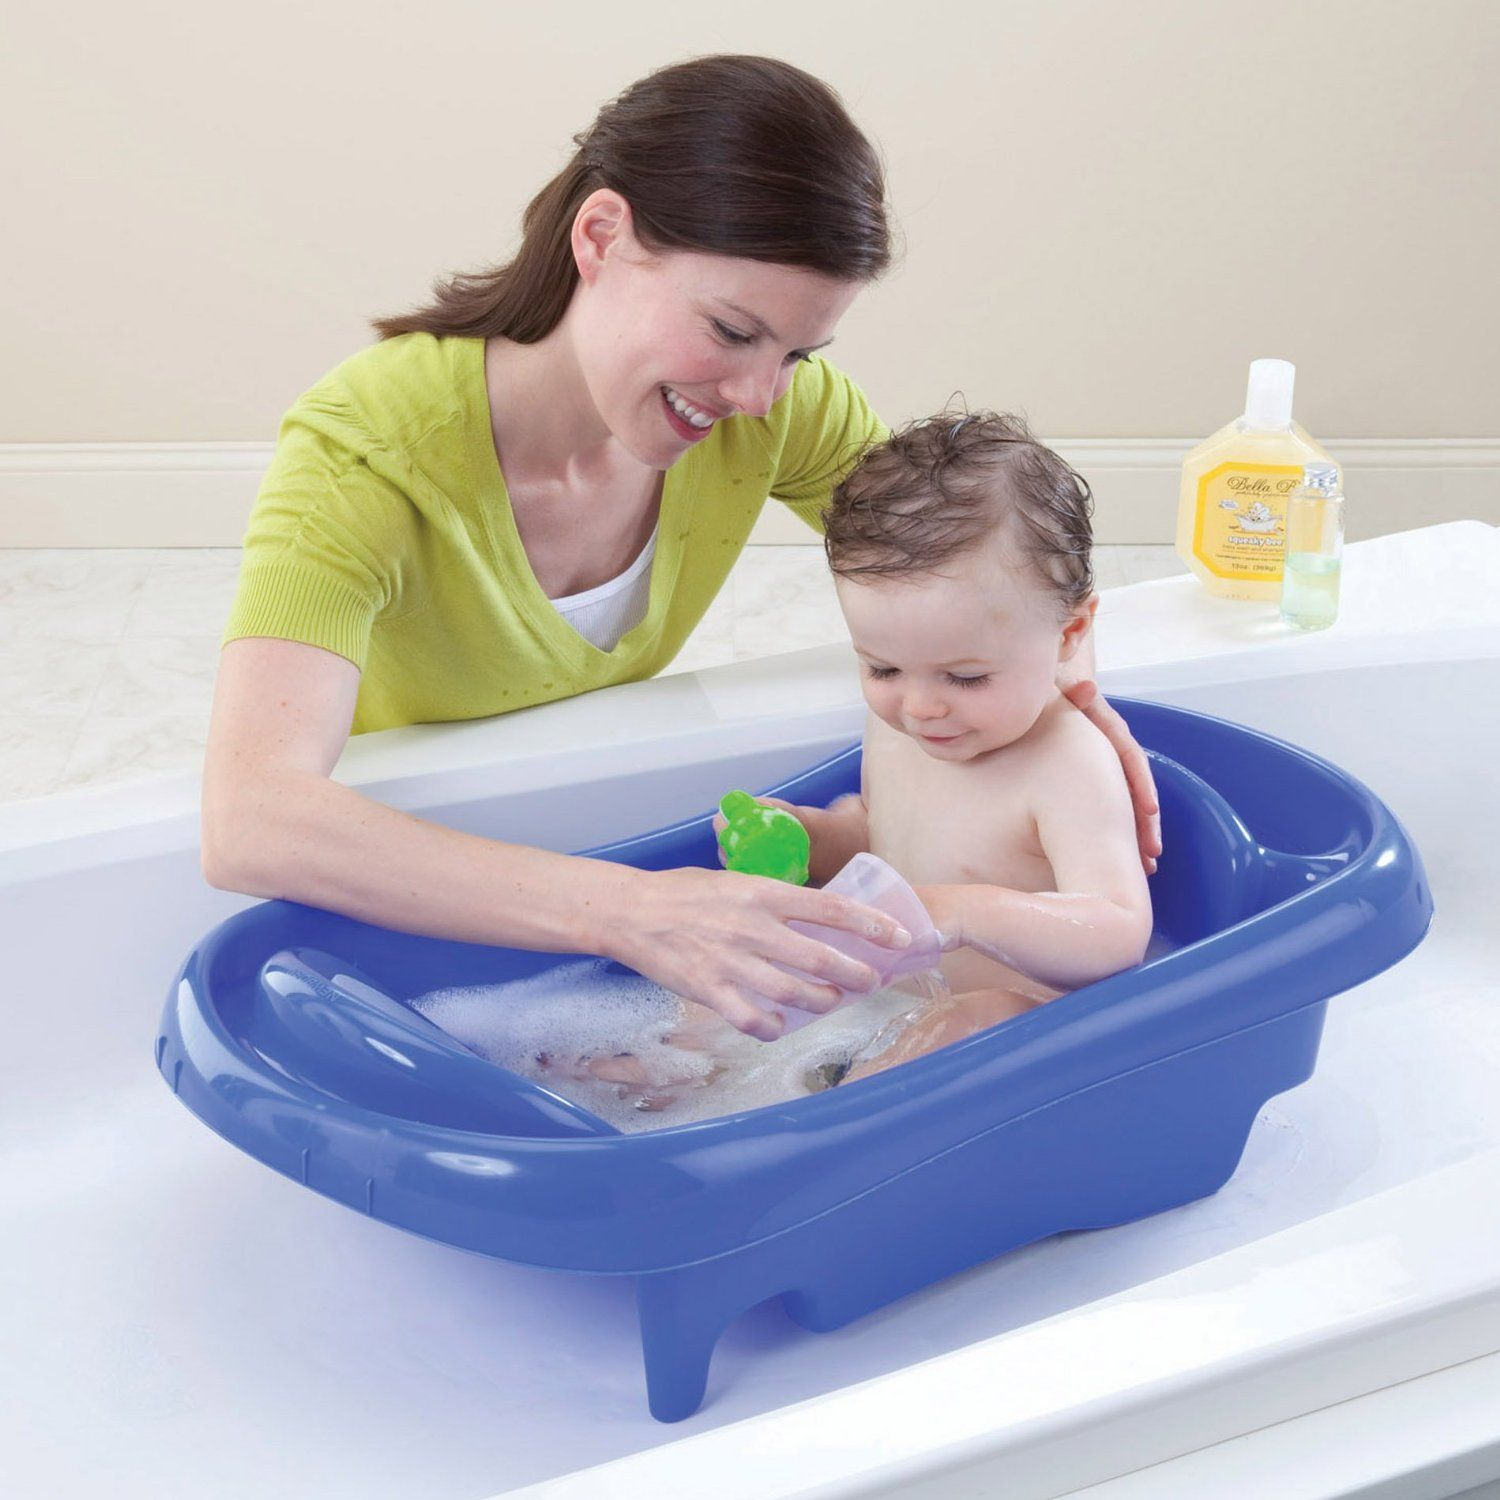 baby body beautiful wash | Baby tub | Pinterest | Bathtubs, Tubs and ...